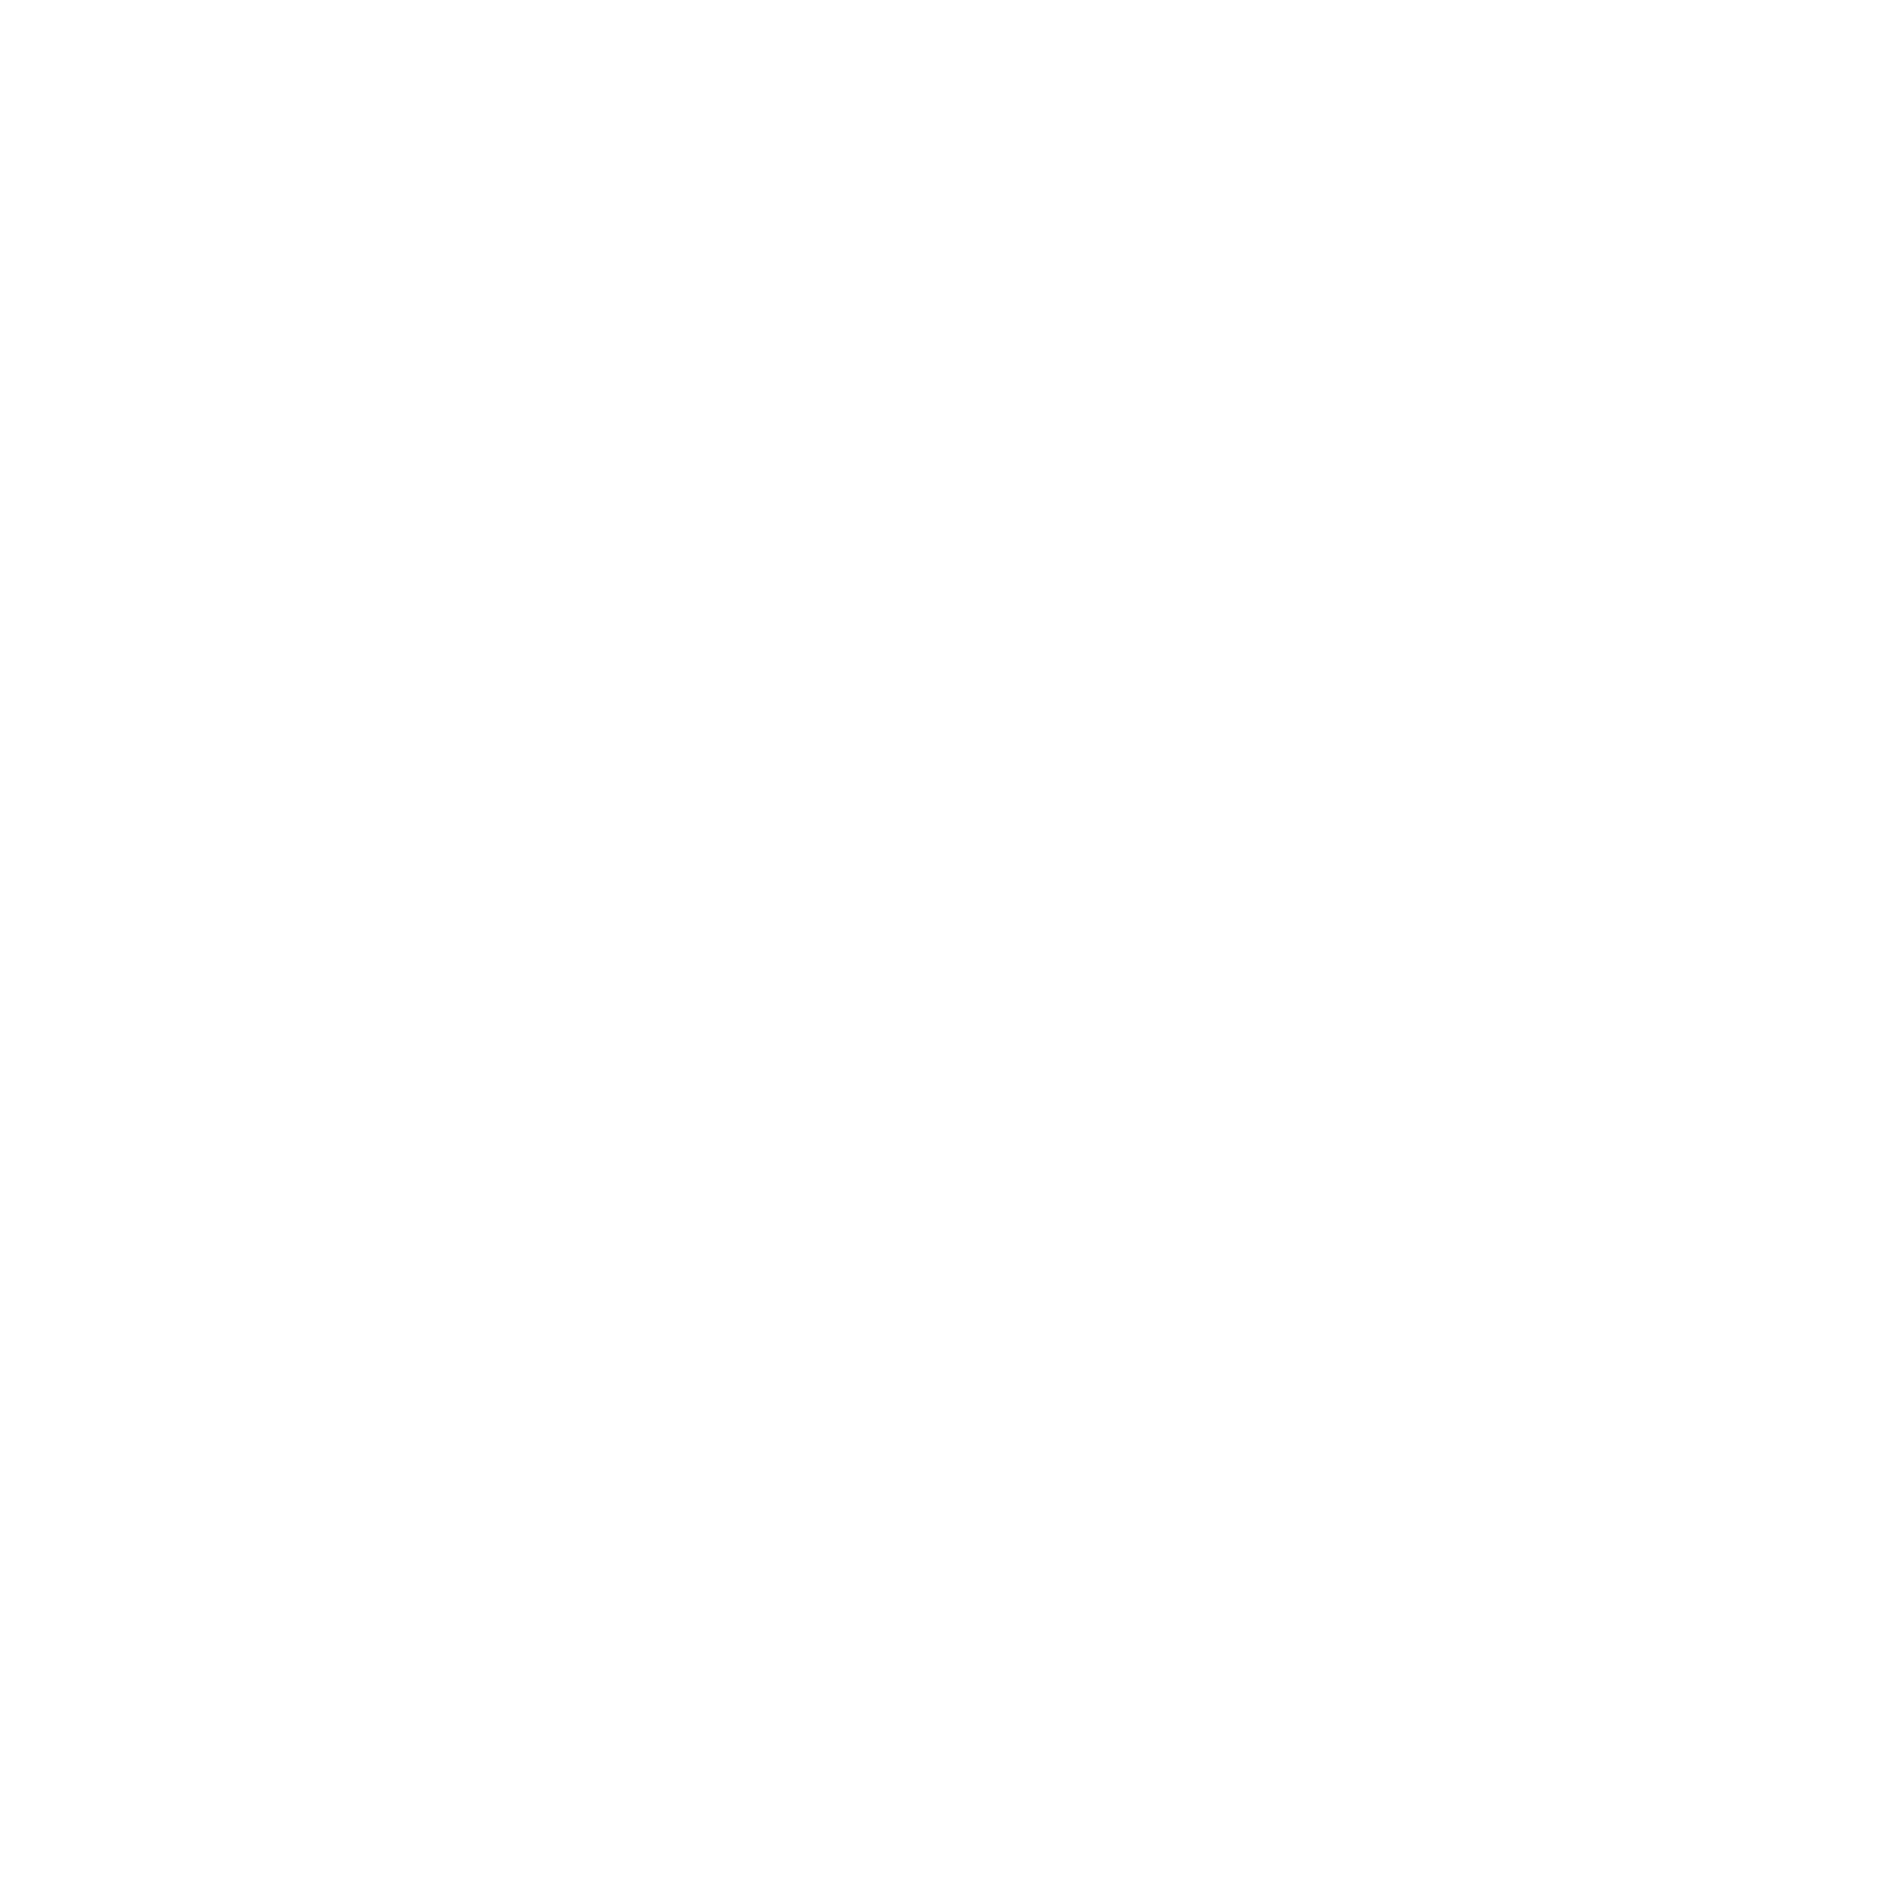 Instagram logo white png. Icon tighes timepieces instagramiconwhite